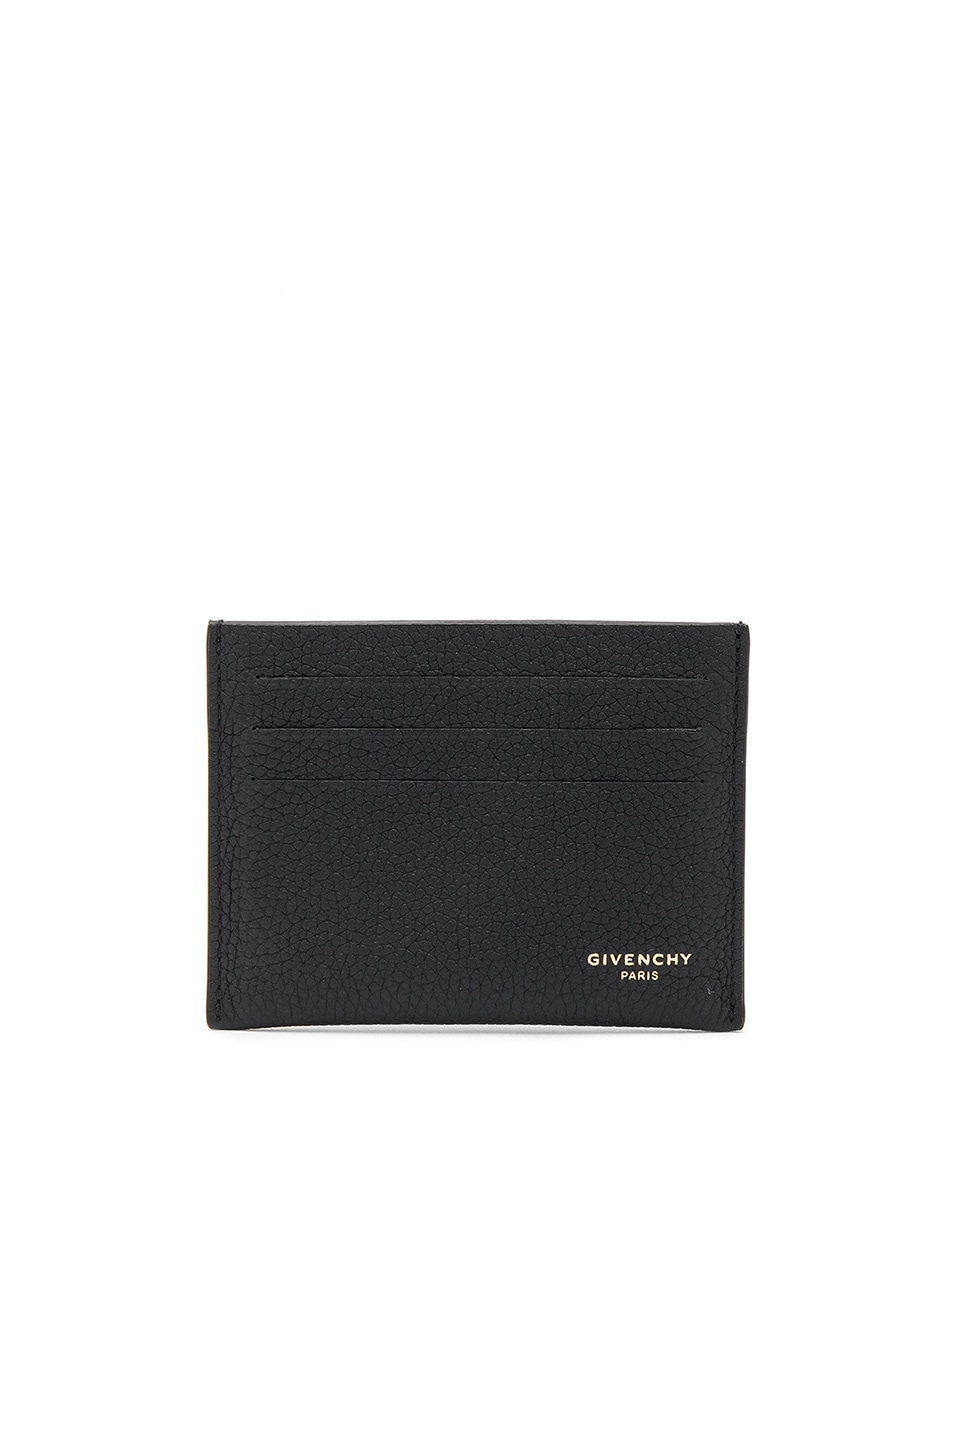 Image 1 of Givenchy Taurillon Leather Card Holder in Black